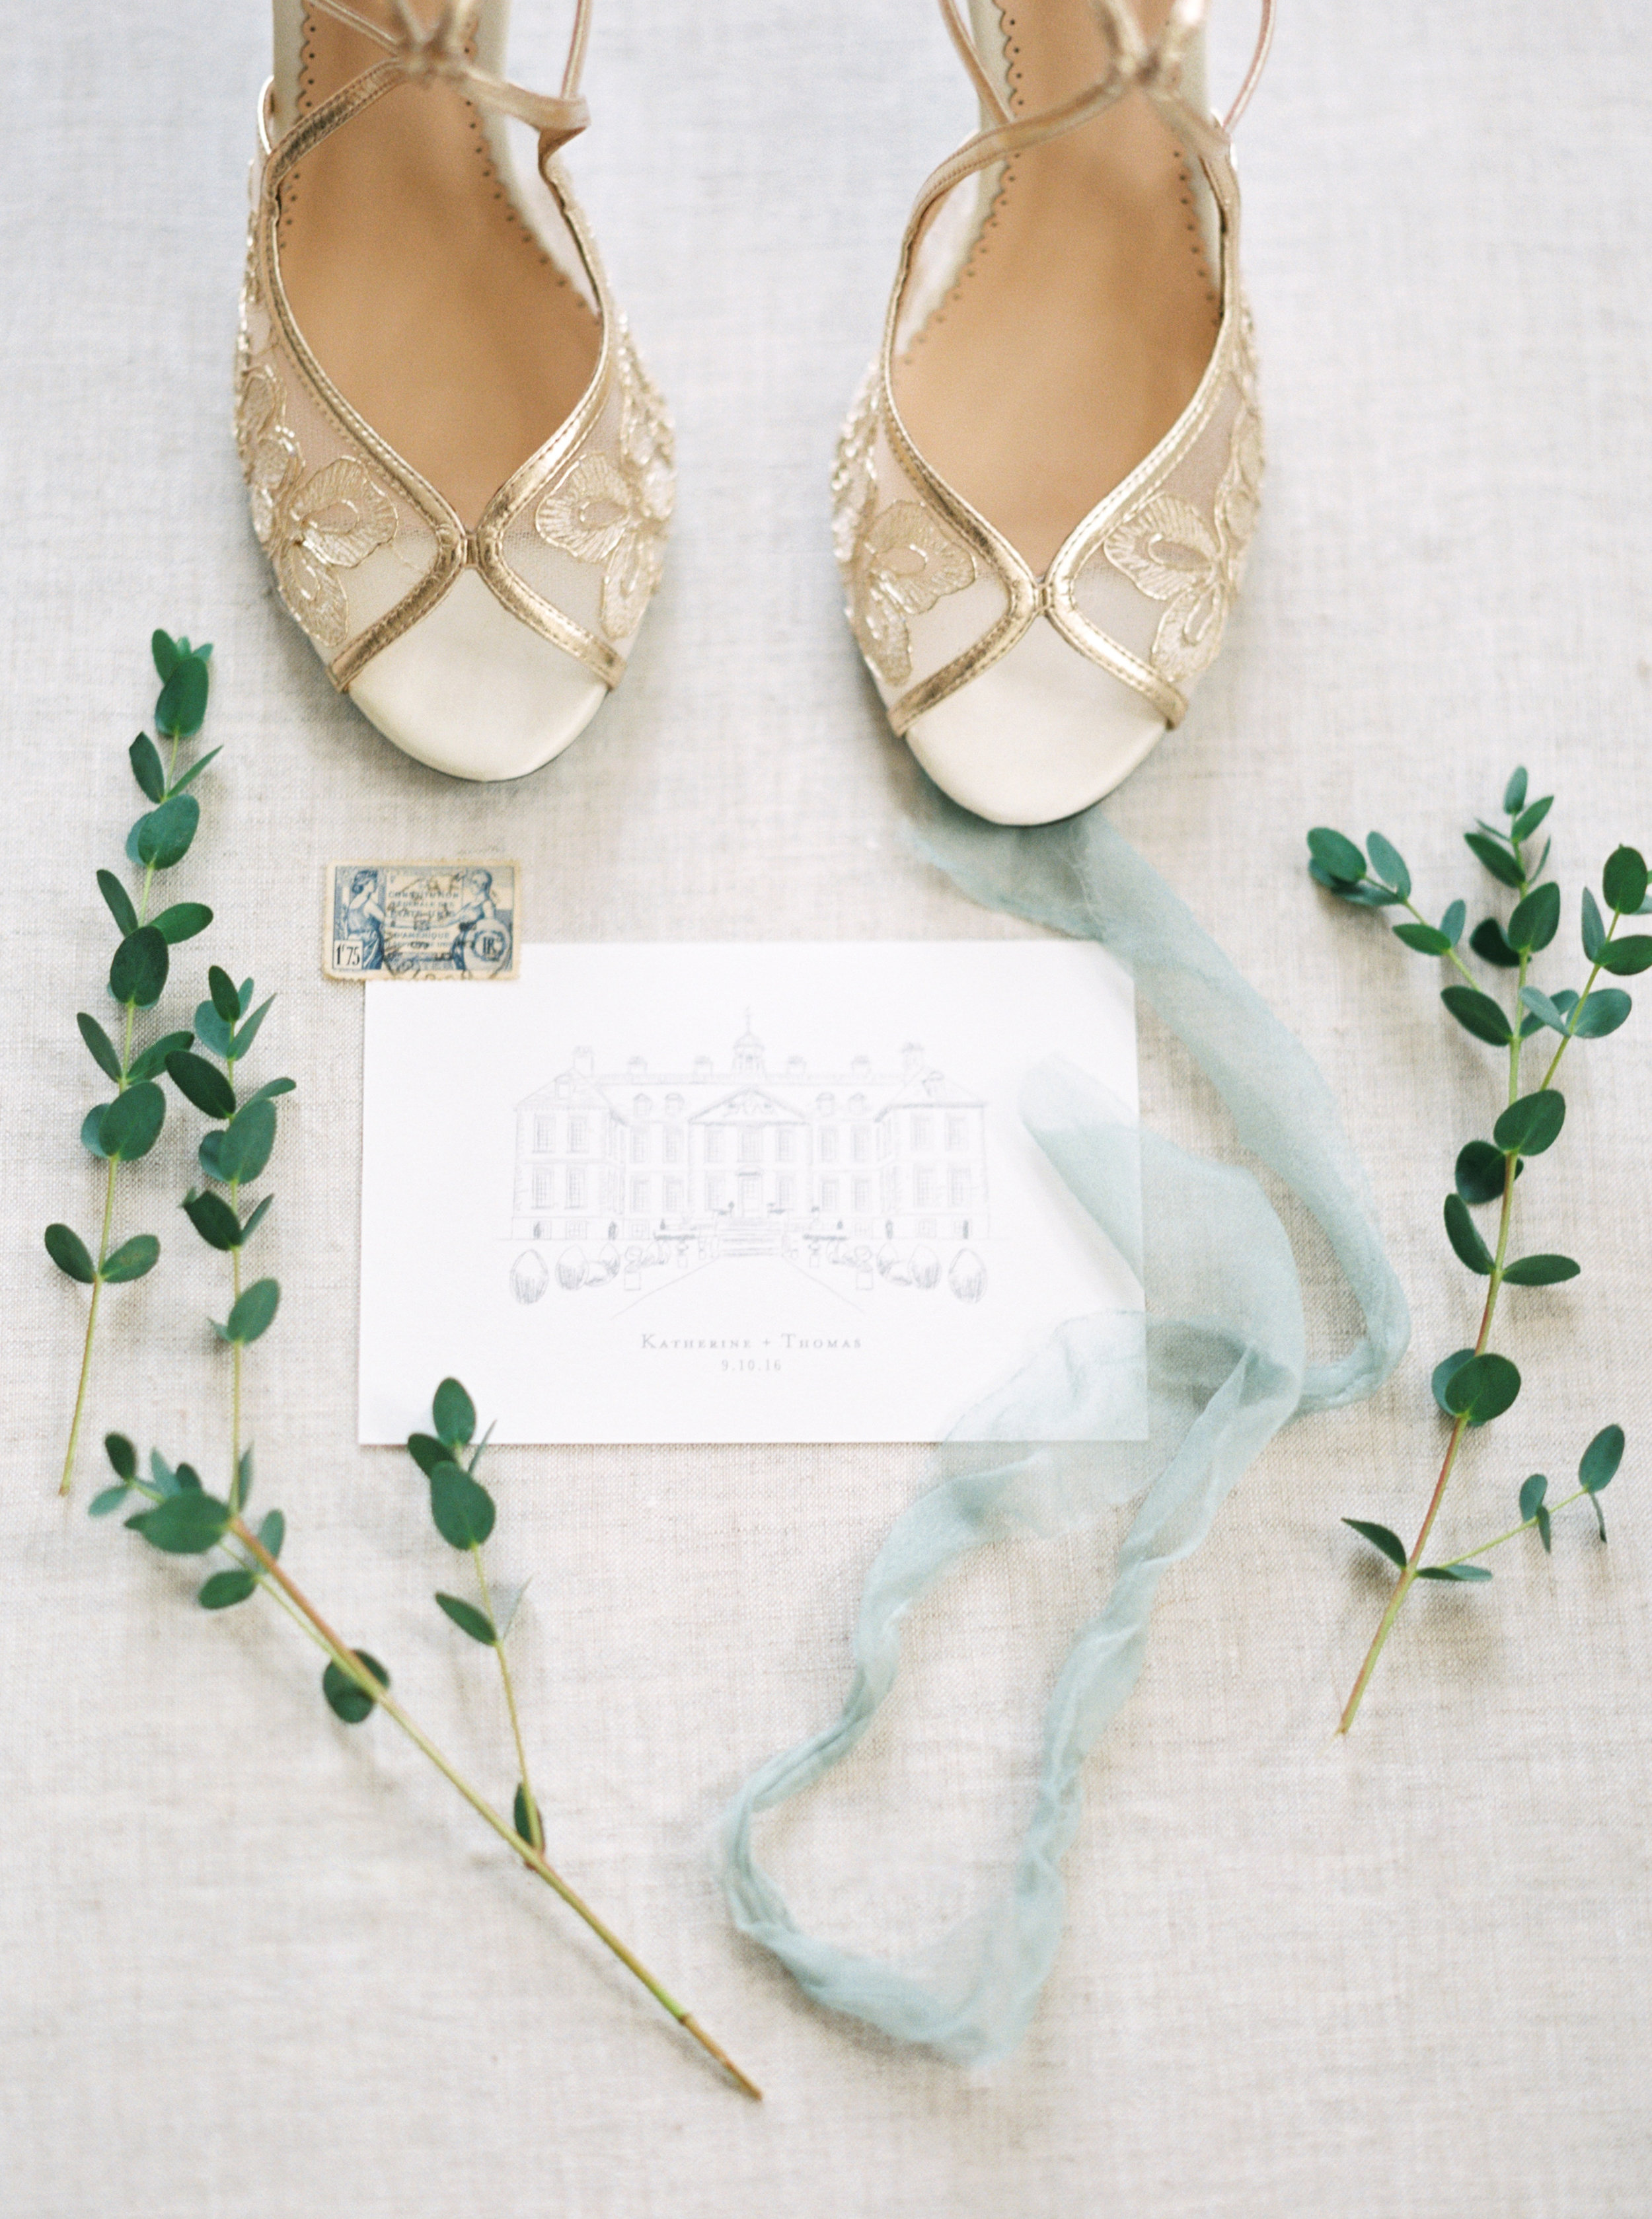 the cypress grove estate house in orlando florida, styled wedding bridal photo, brides shoes, invitation detail shot